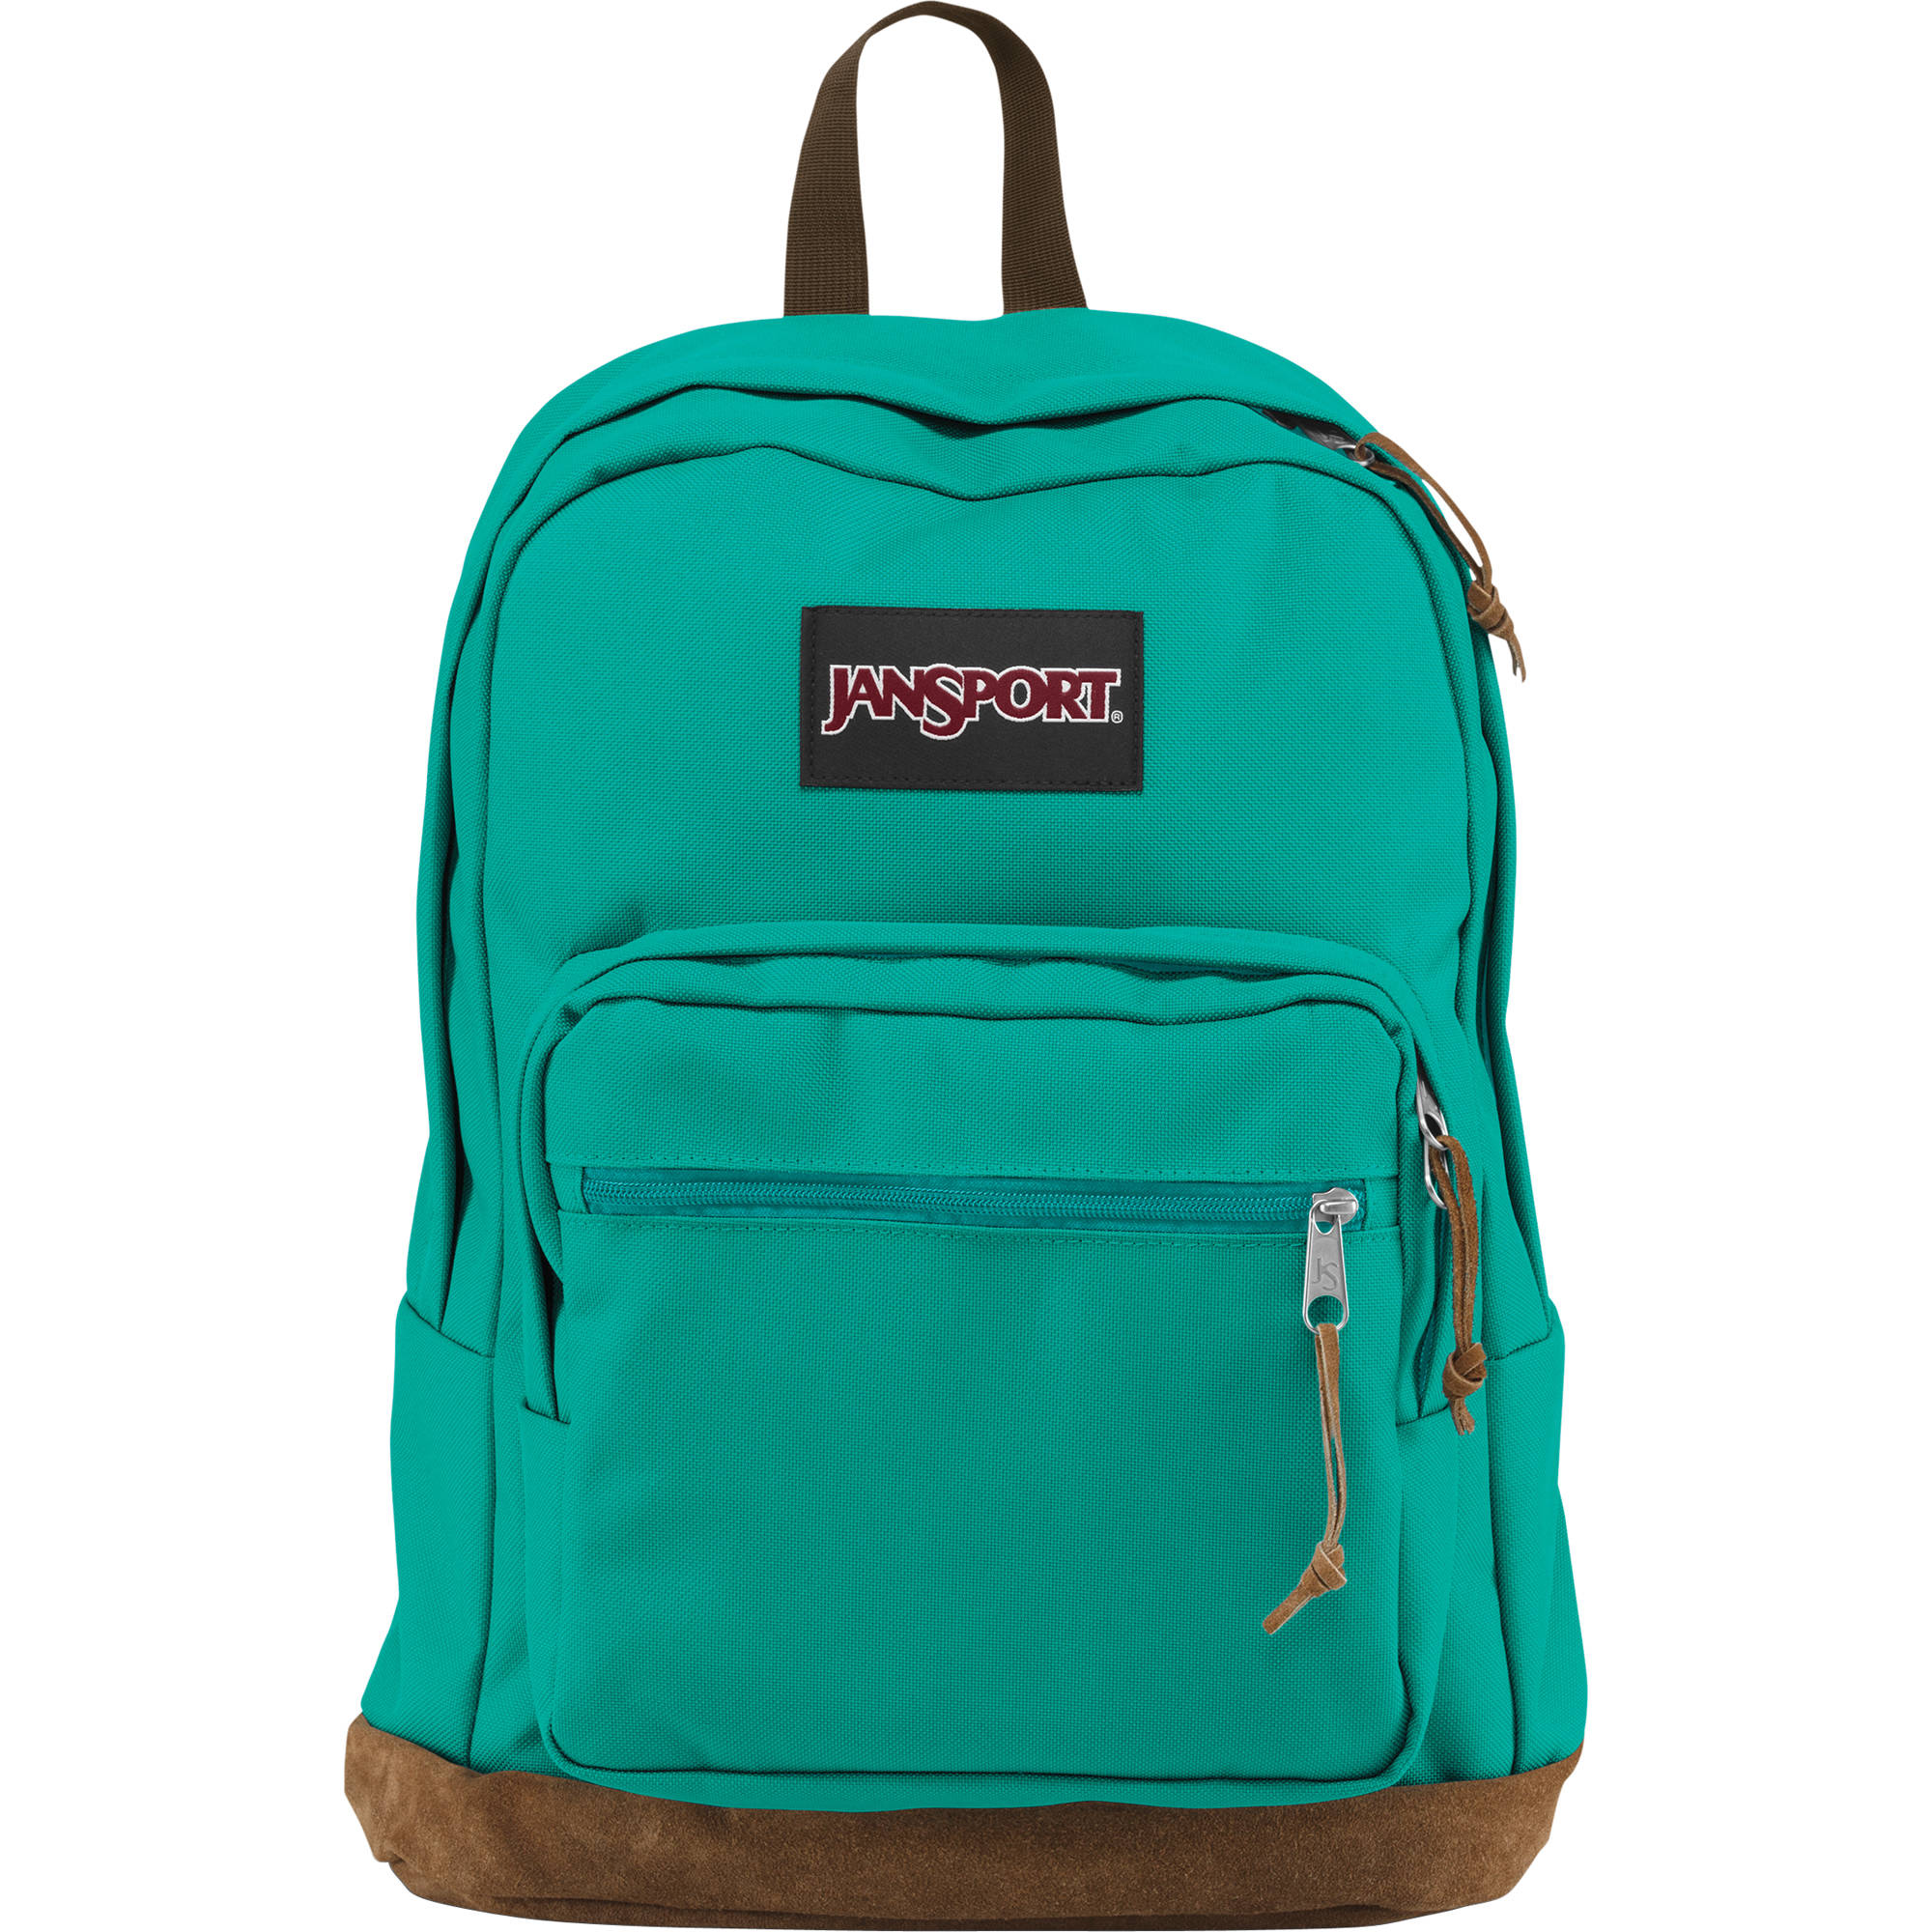 Jansport Right Pack Backpack LtpV14no